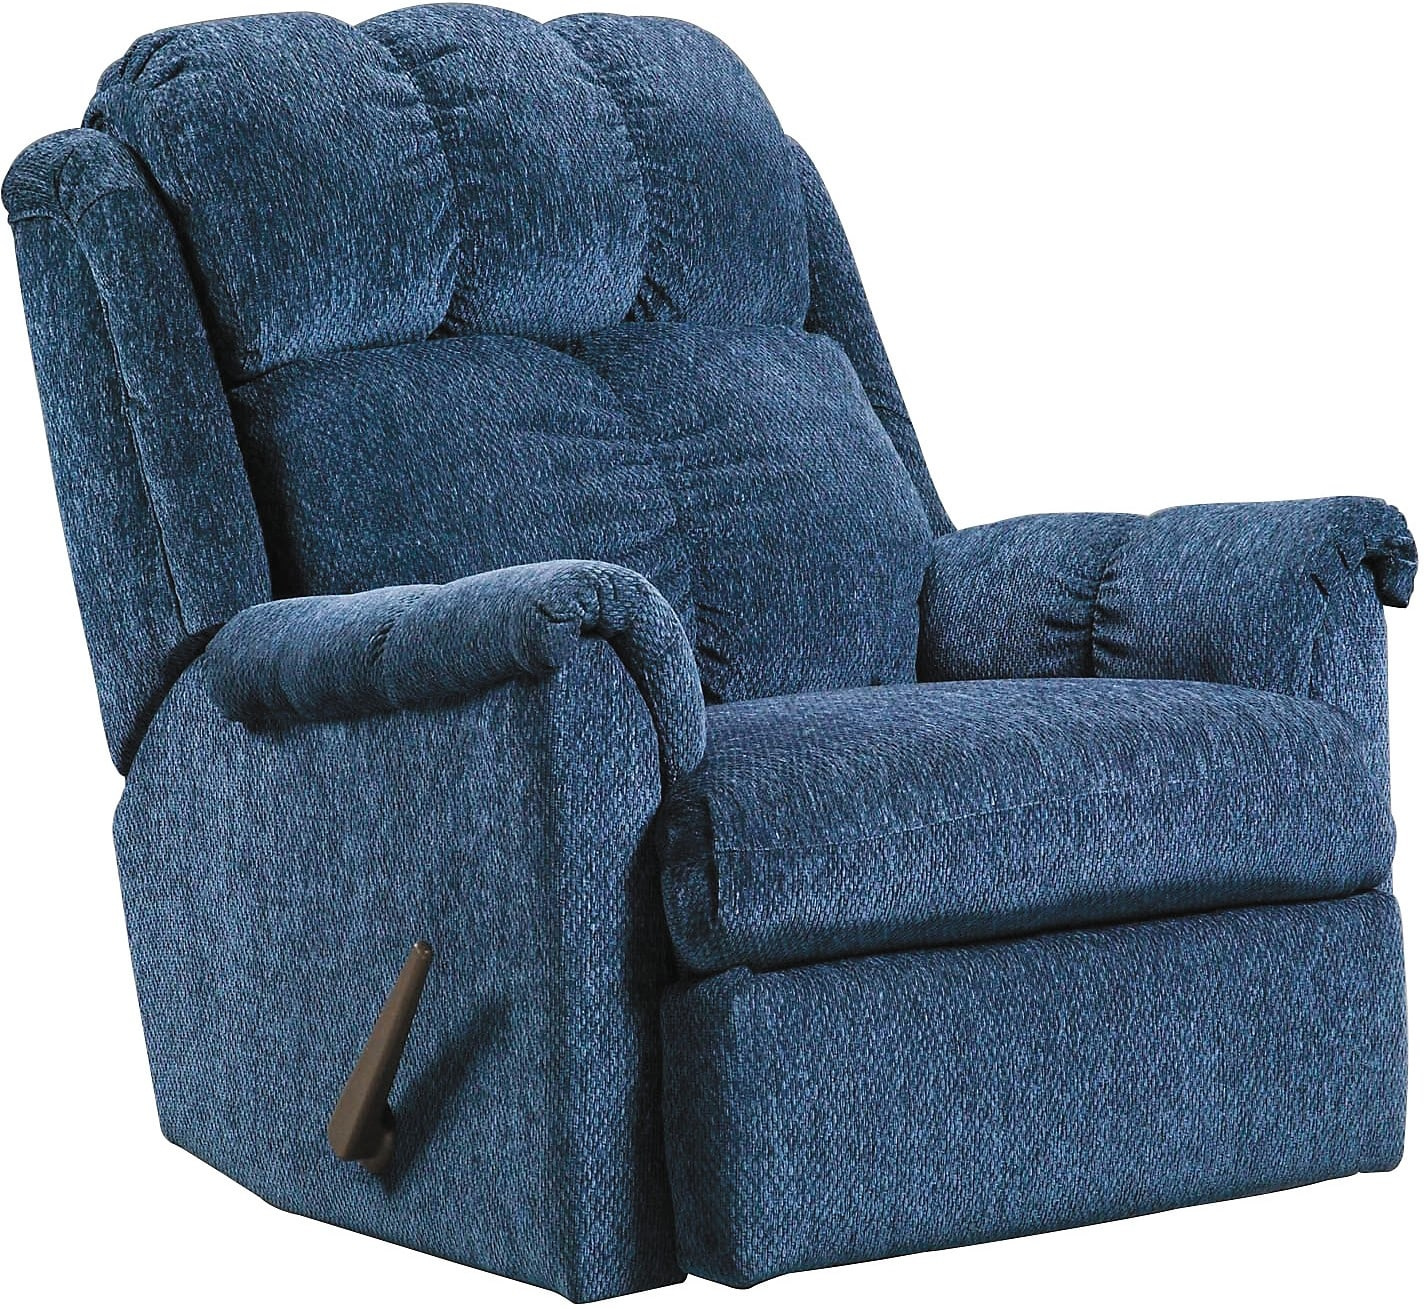 Navy Chenille Rocker Recliner